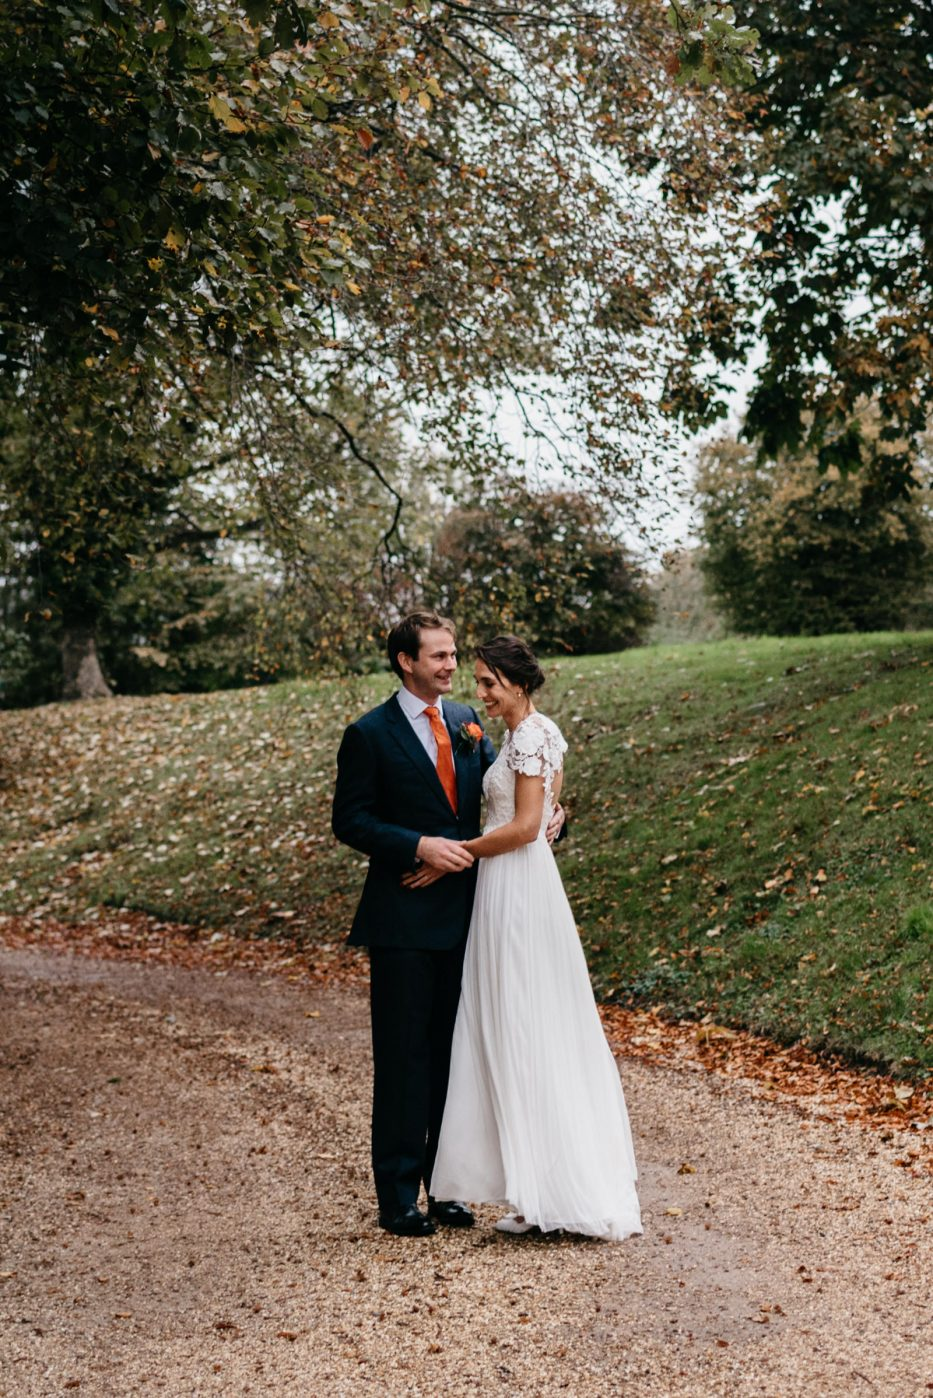 candid photograph of Chepstow bride and groom during wedding at St Tewdrics House